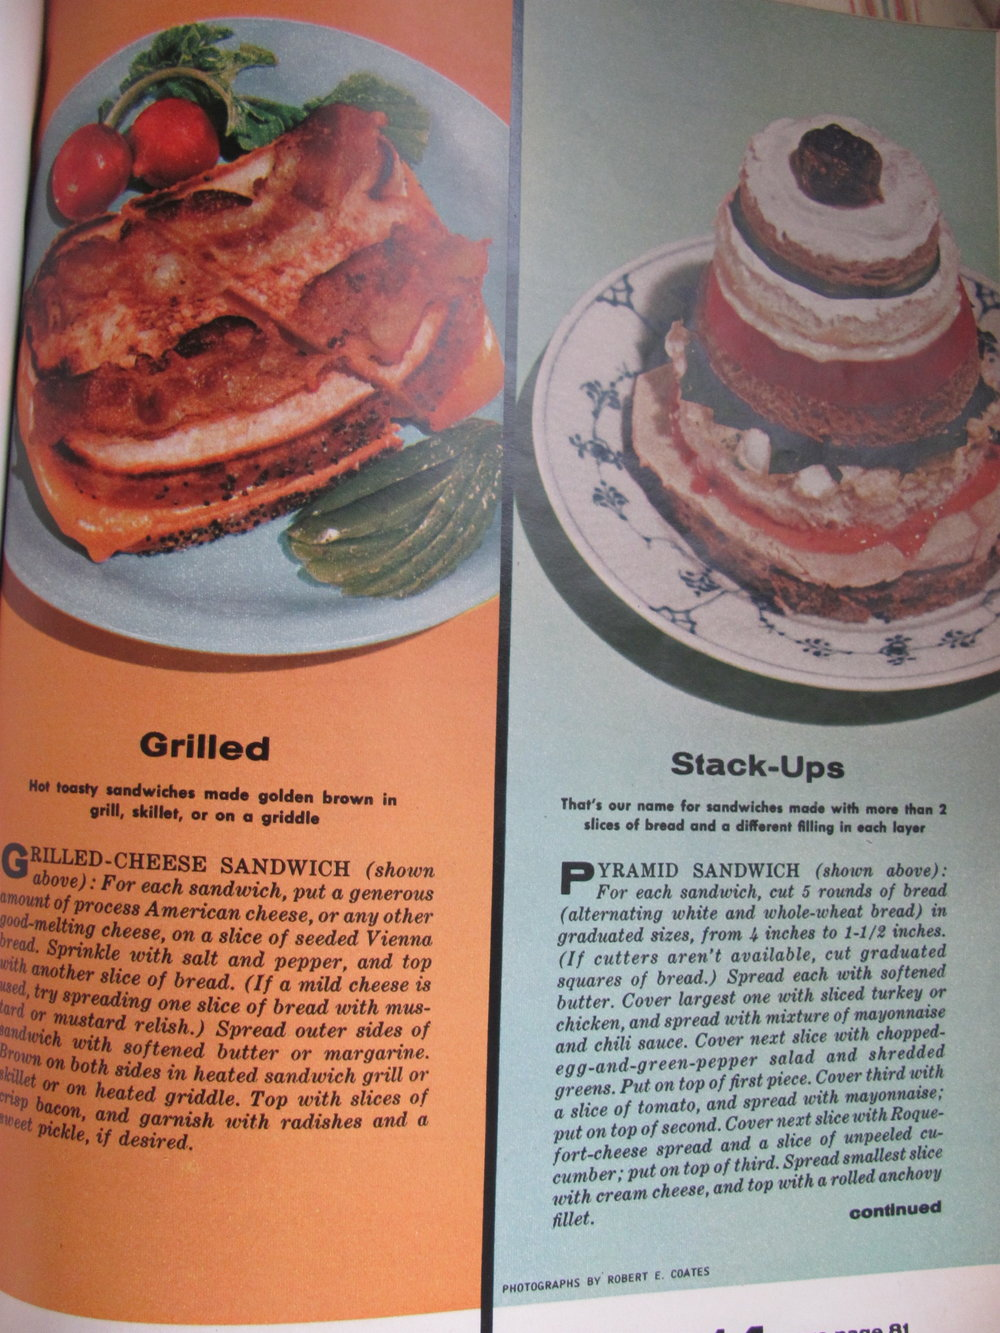 """Remember """"stack-ups"""" from before? And I see a grilled cheese sandwich but if they think they can trick me into eating my """"process American cheese"""" without tongue and raisins, they can go scratch."""